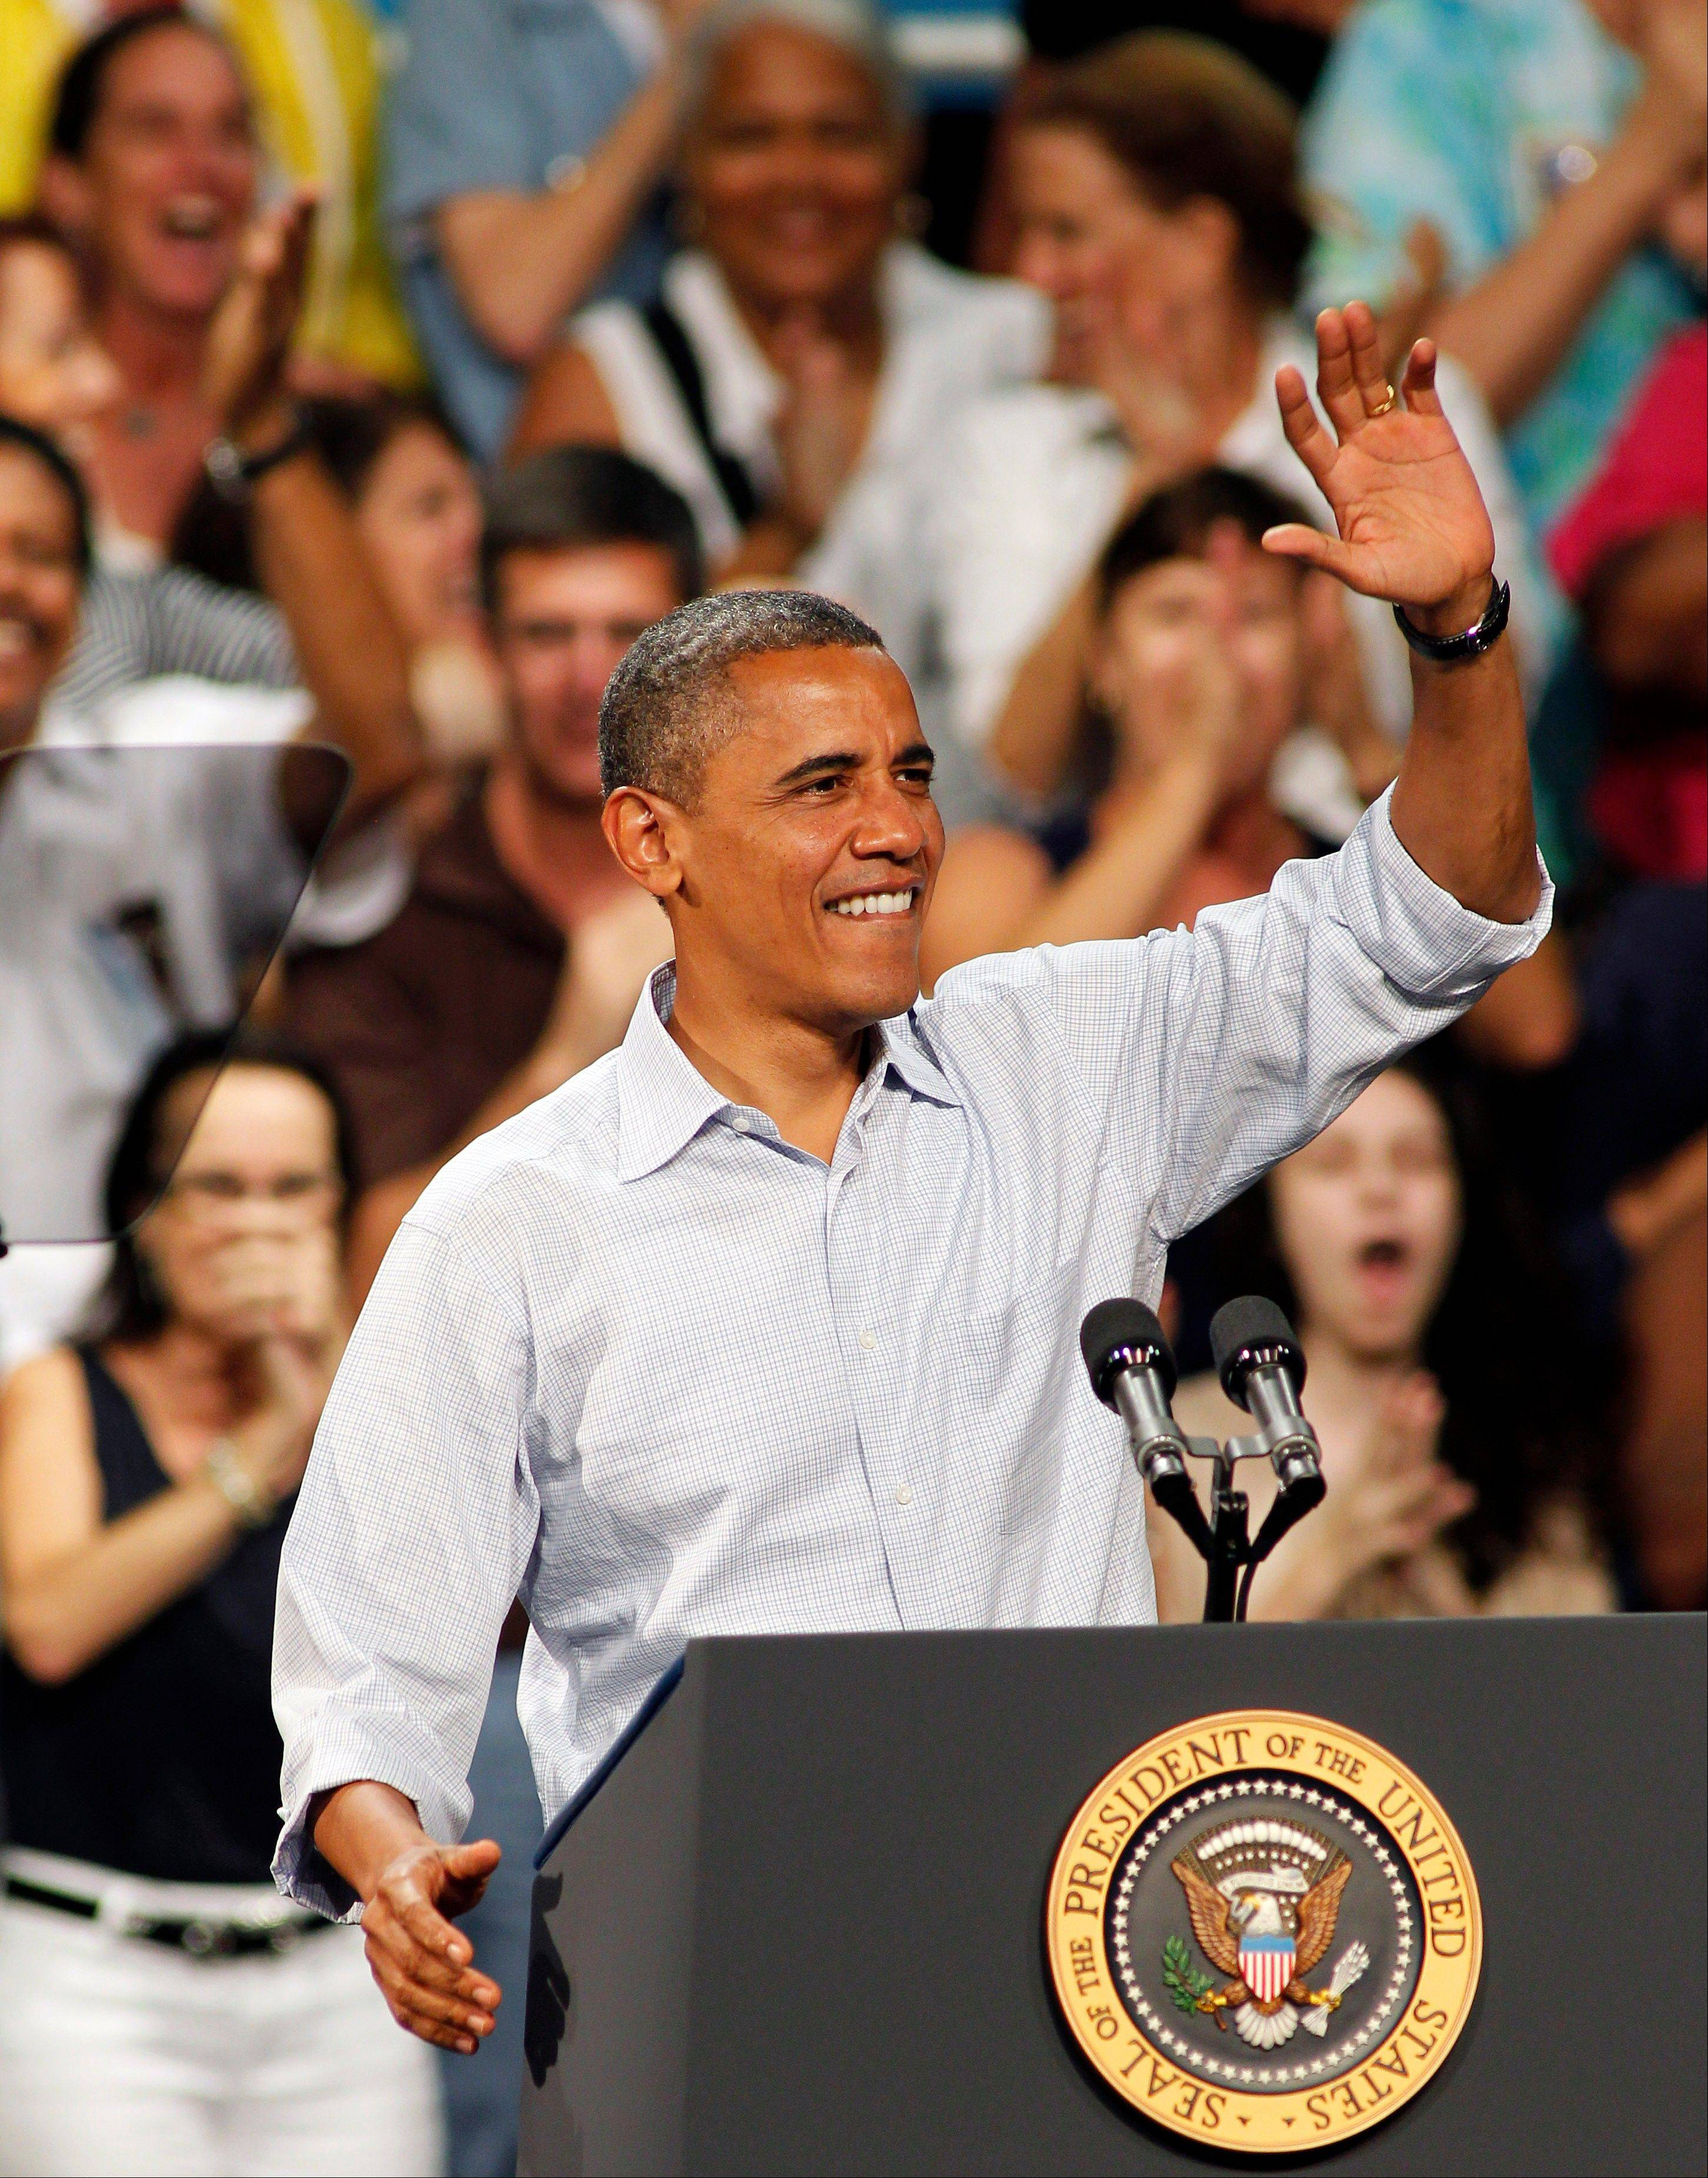 President Barack Obama speaks at the Palm Beach County Convention Center in West Palm Beach, Fla., Sunday.